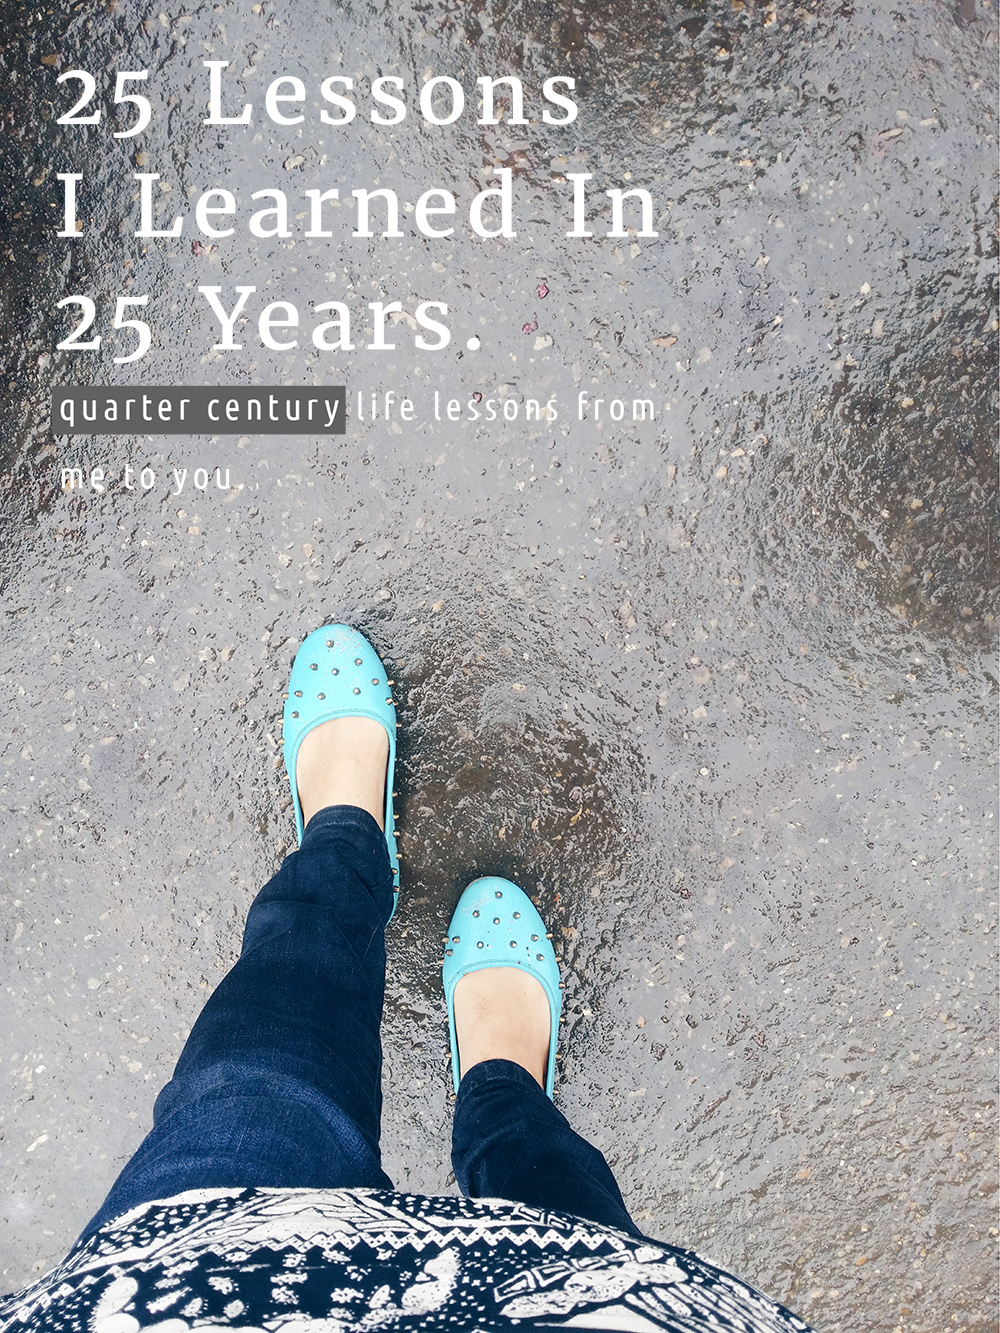 25 Lessons I learned in 25 Years